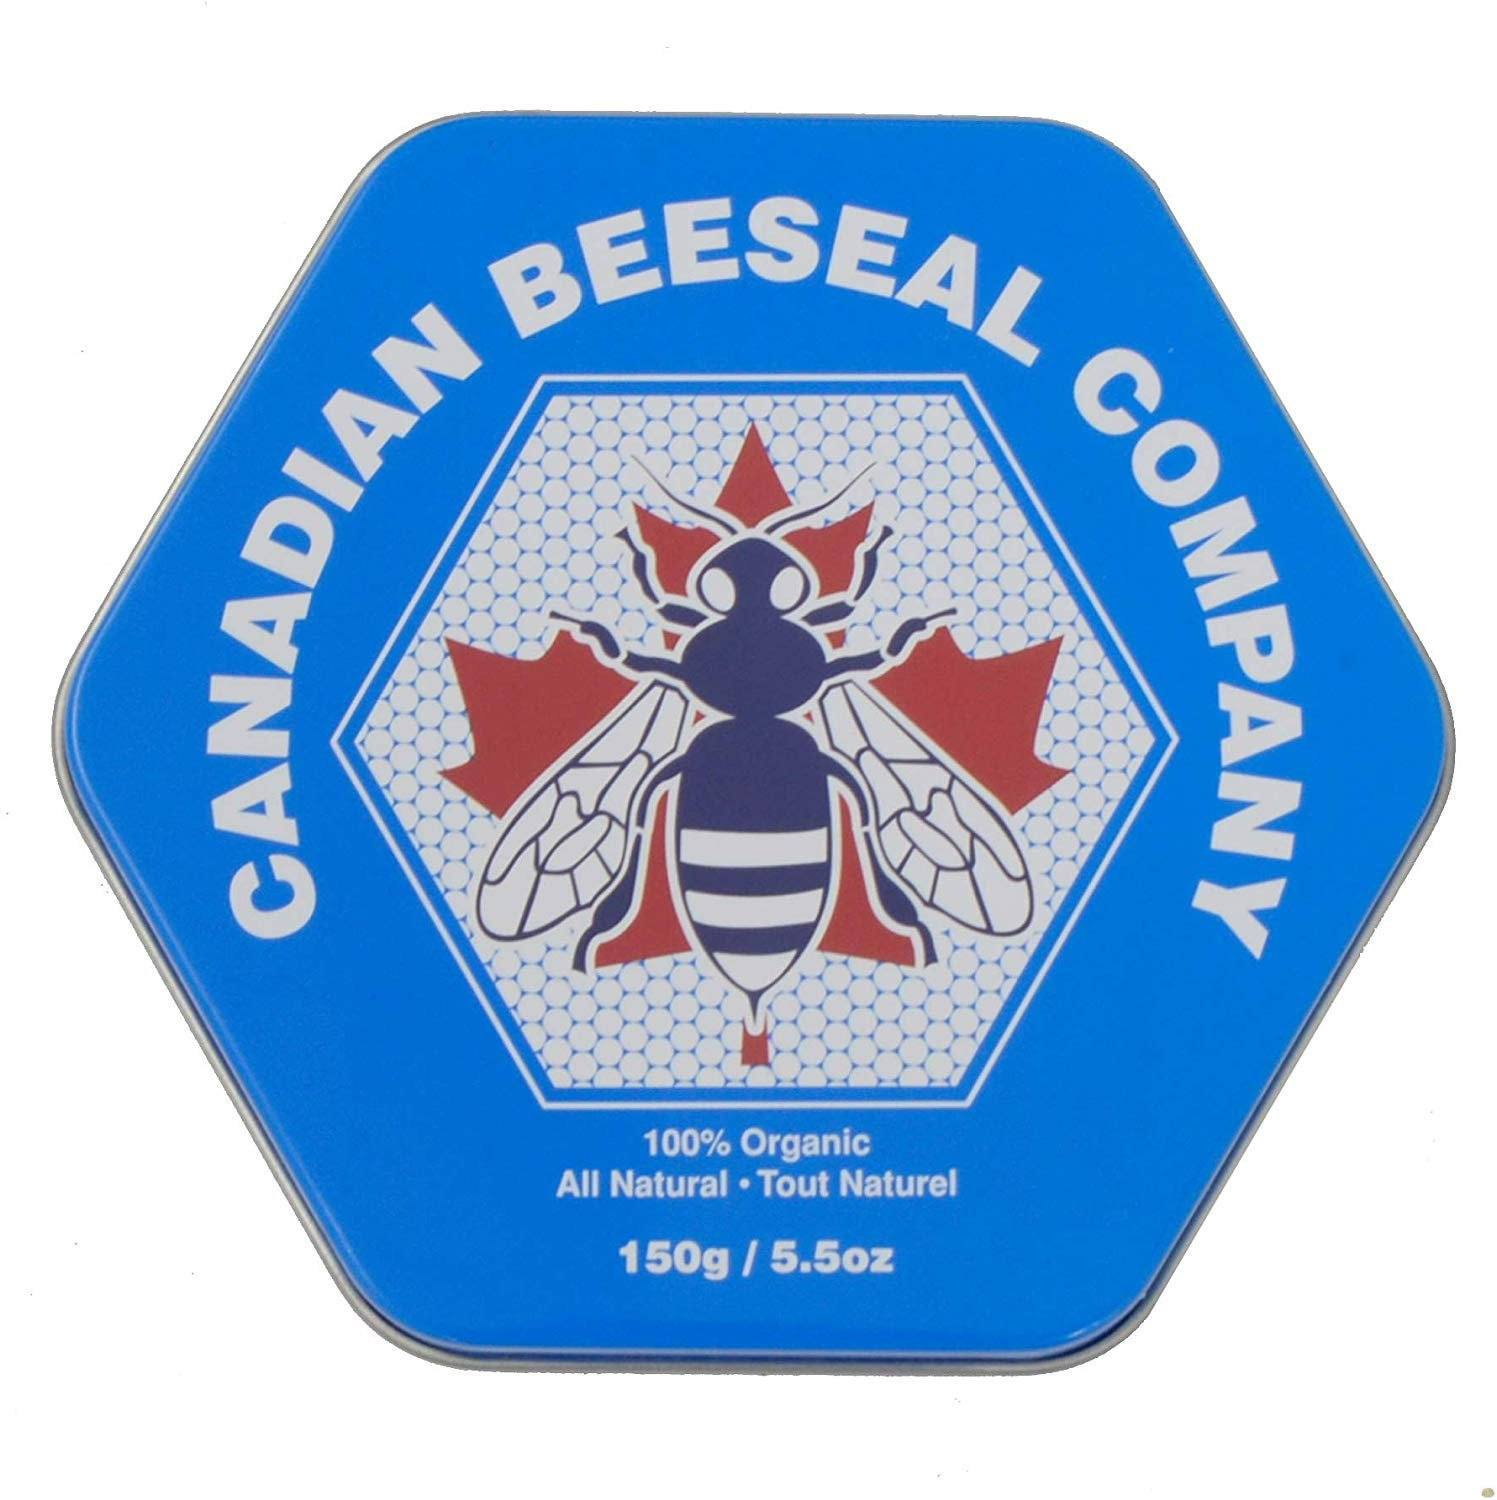 Canadian Beeseal Leather Protector Grooming Supplies Canadian Beeseal